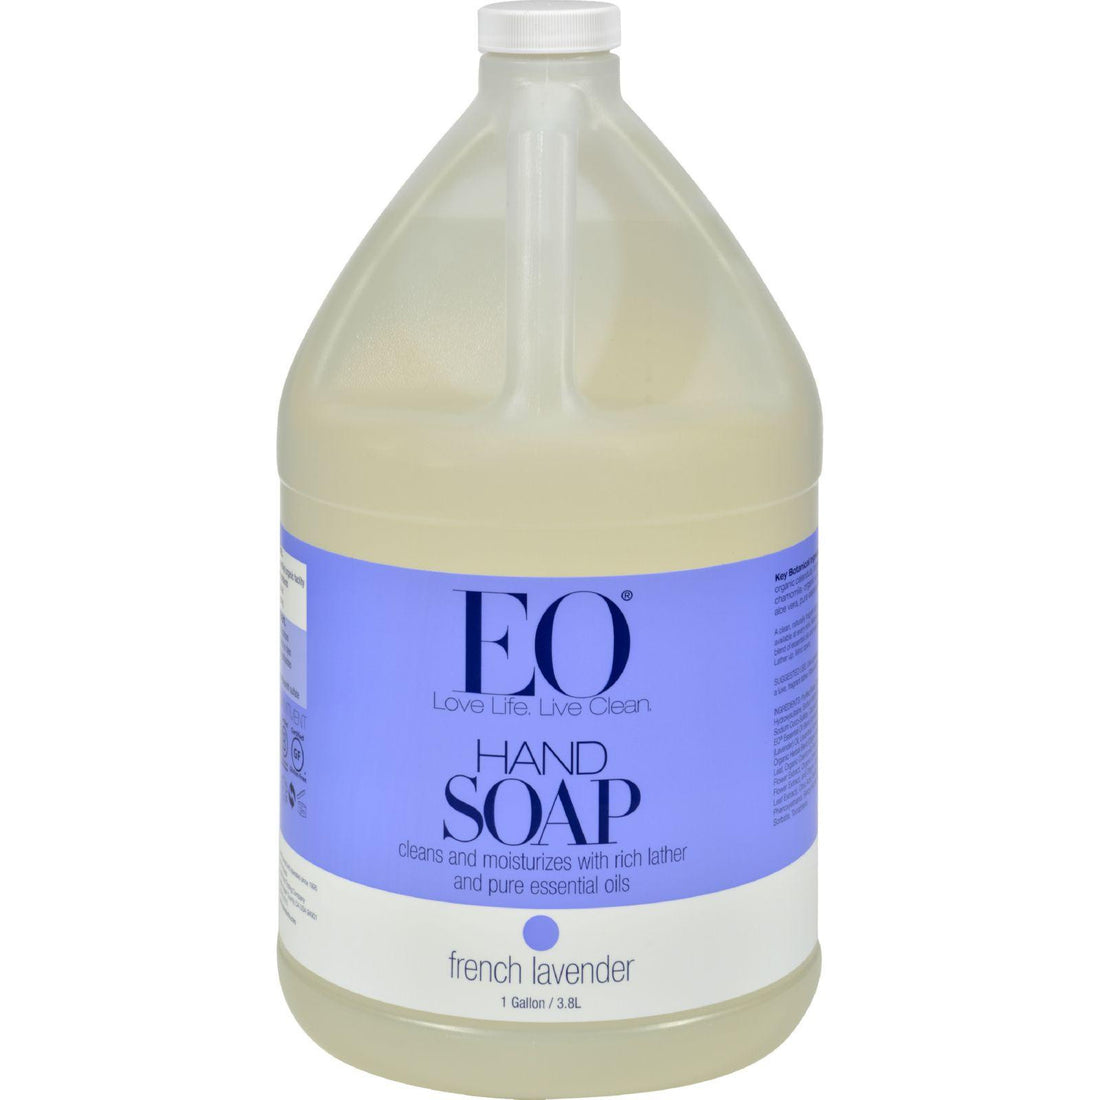 Mother Mantis: Eo Products Liquid Hand Soap French Lavender - 1 Gallon Eo Products